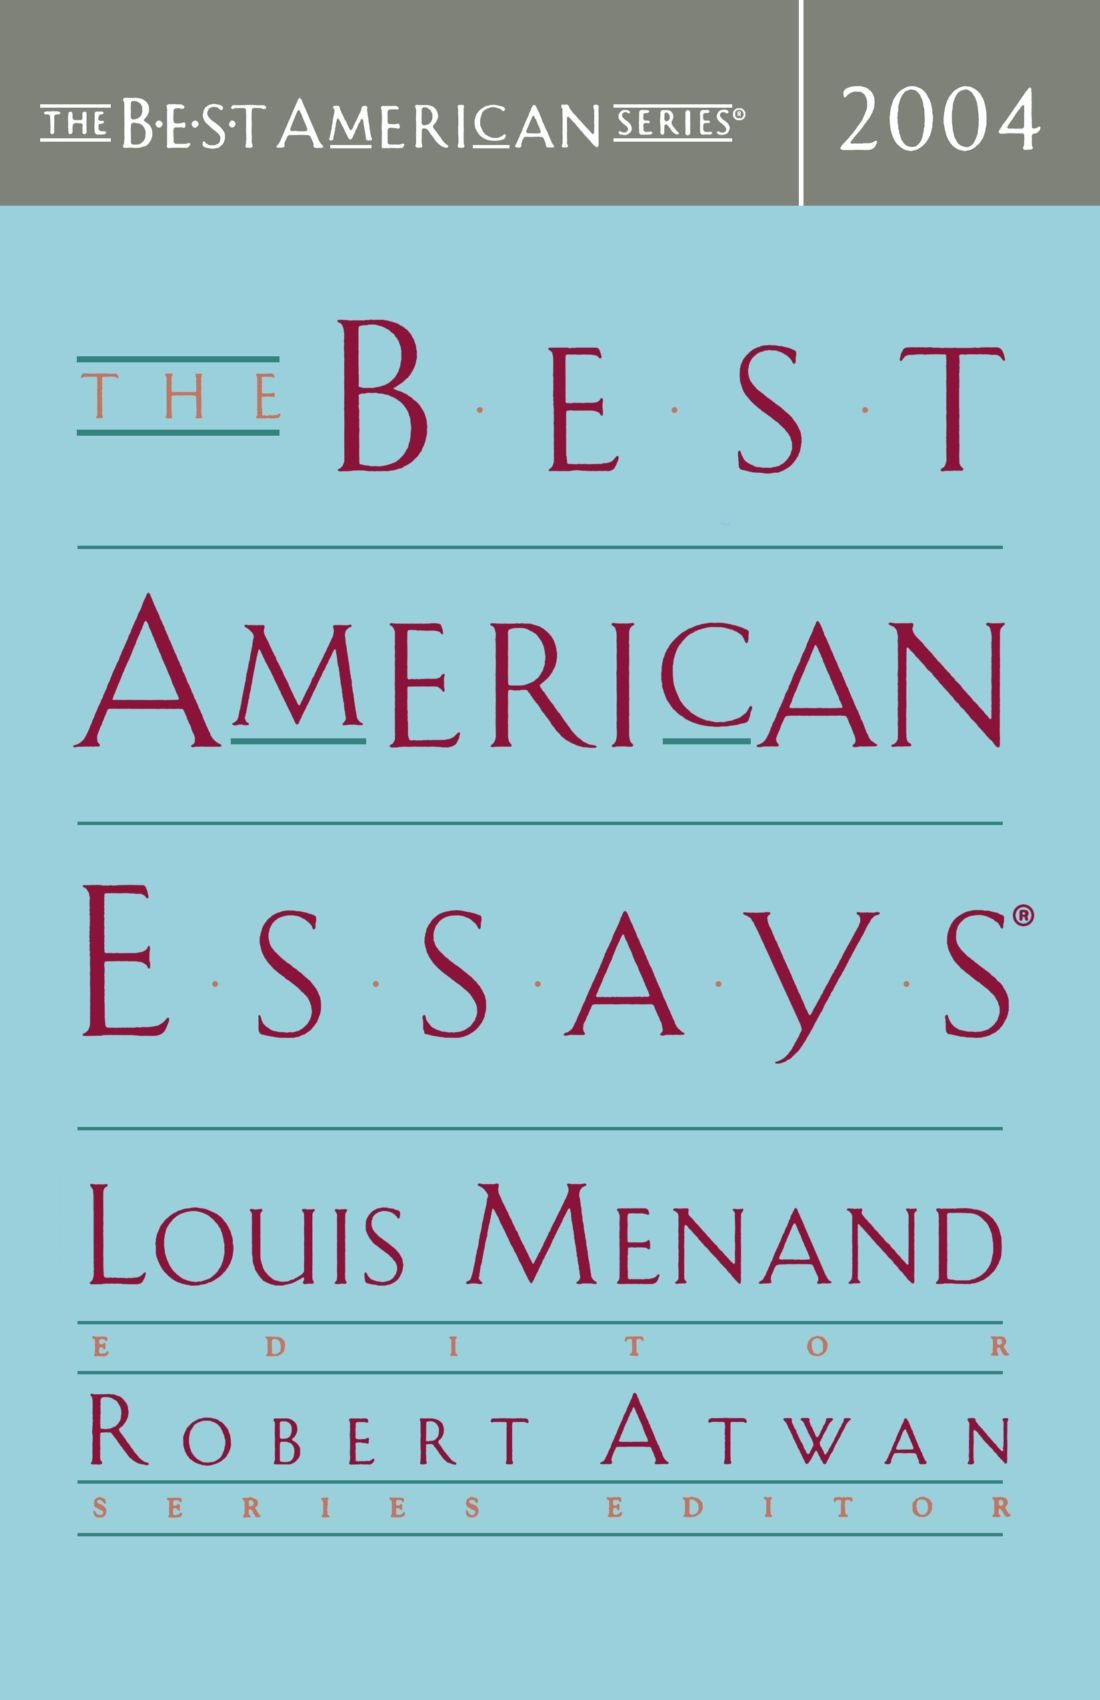 015 Essay Example The Best American Essays Wonderful Of Century Table Contents 2013 Pdf Download Full